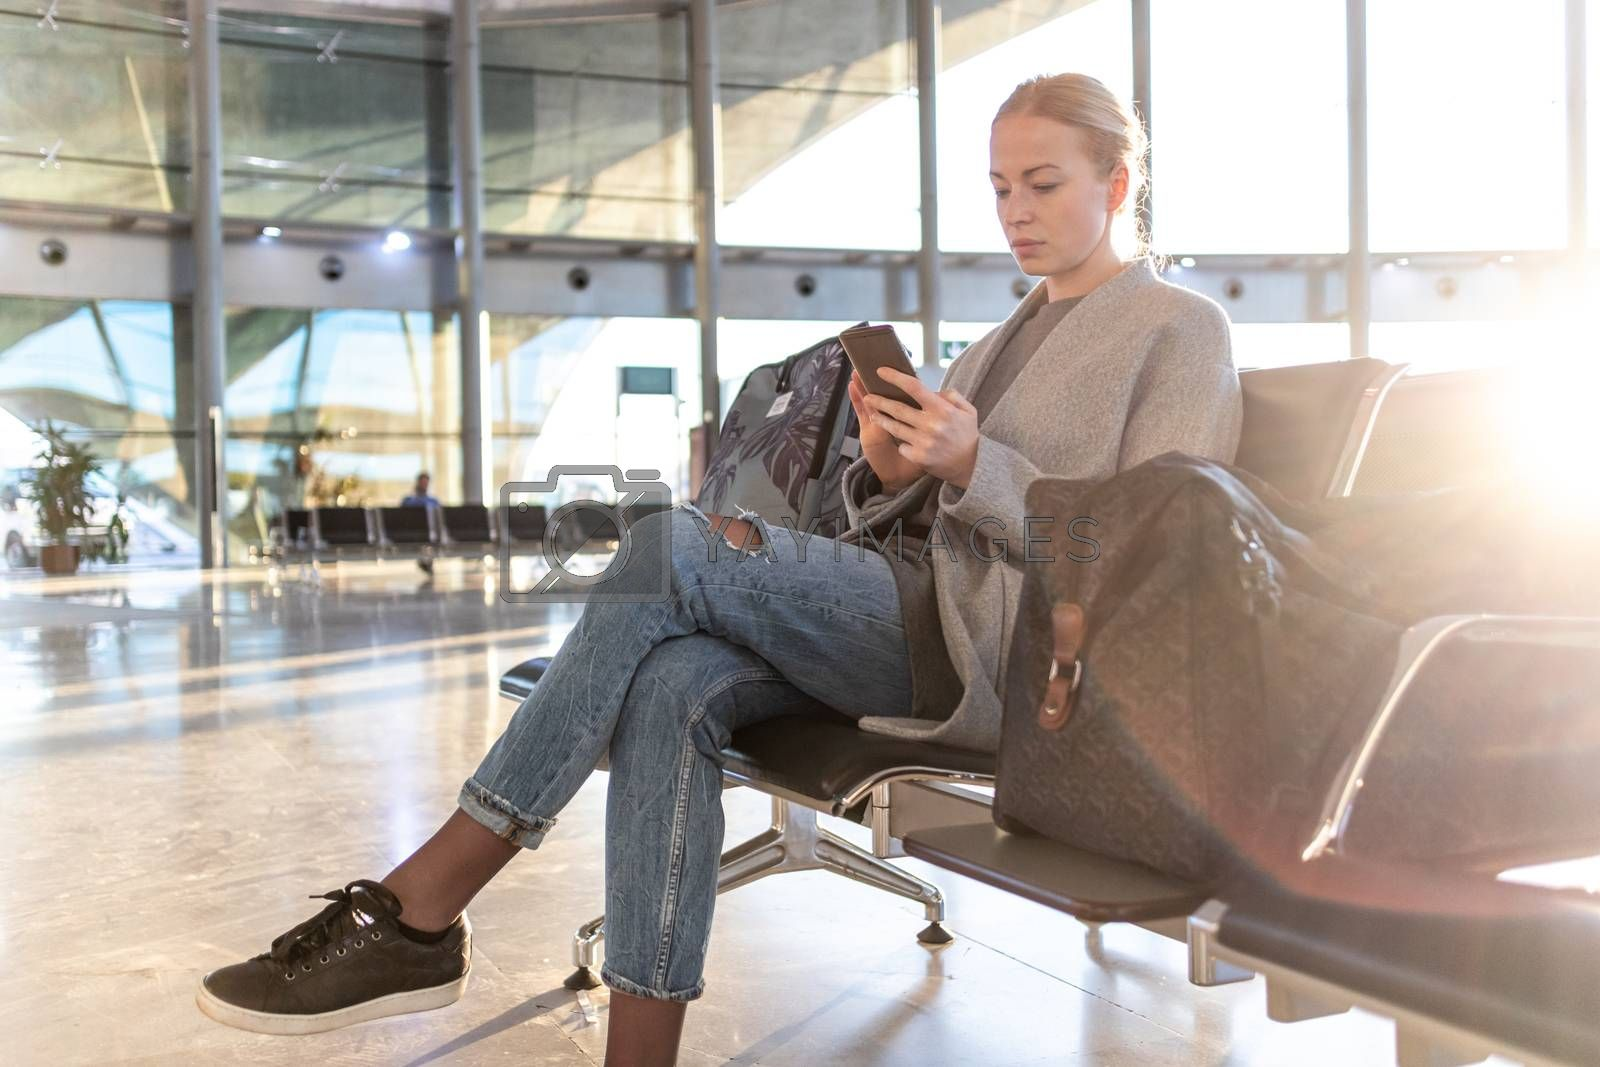 Casual blond young woman talking on cell phone while waiting to board a plane at airport departure gates. Empty airport terminal due to corona virus pandemic.